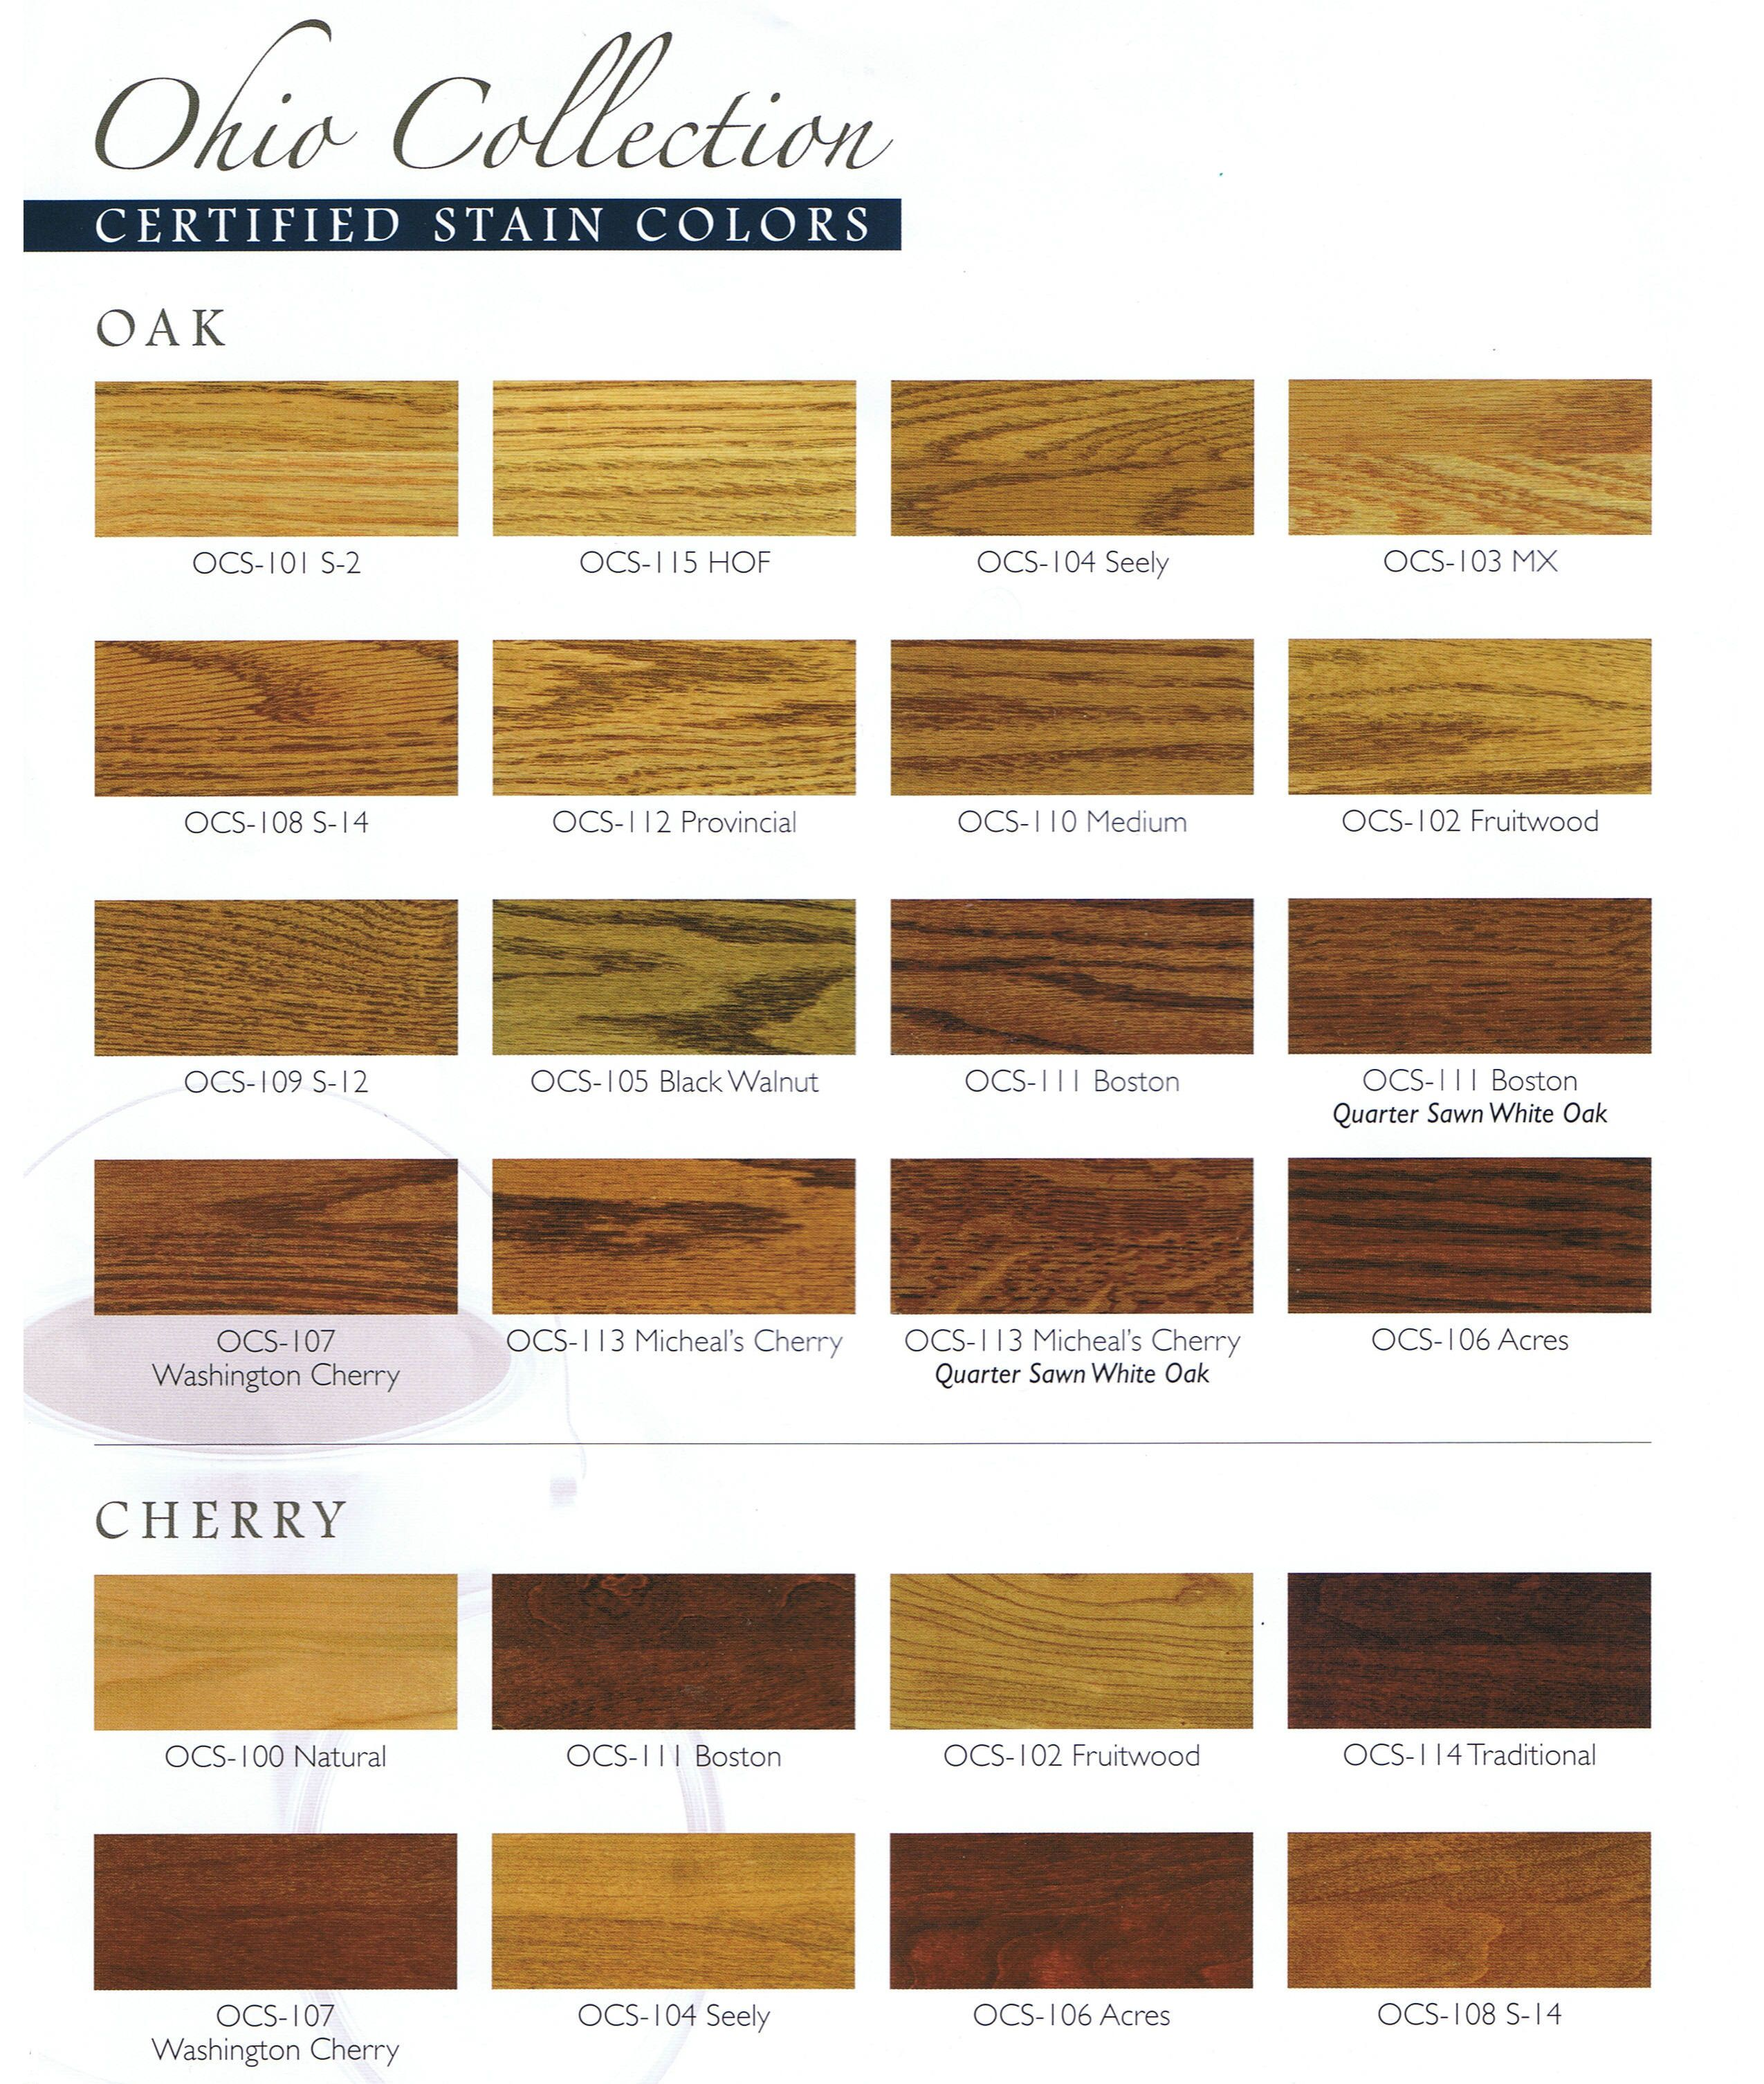 Furniture Design Ideas  Colored Stains For Wood Furniture. Furniture Design Ideas  Colored Stains For Wood Furniture